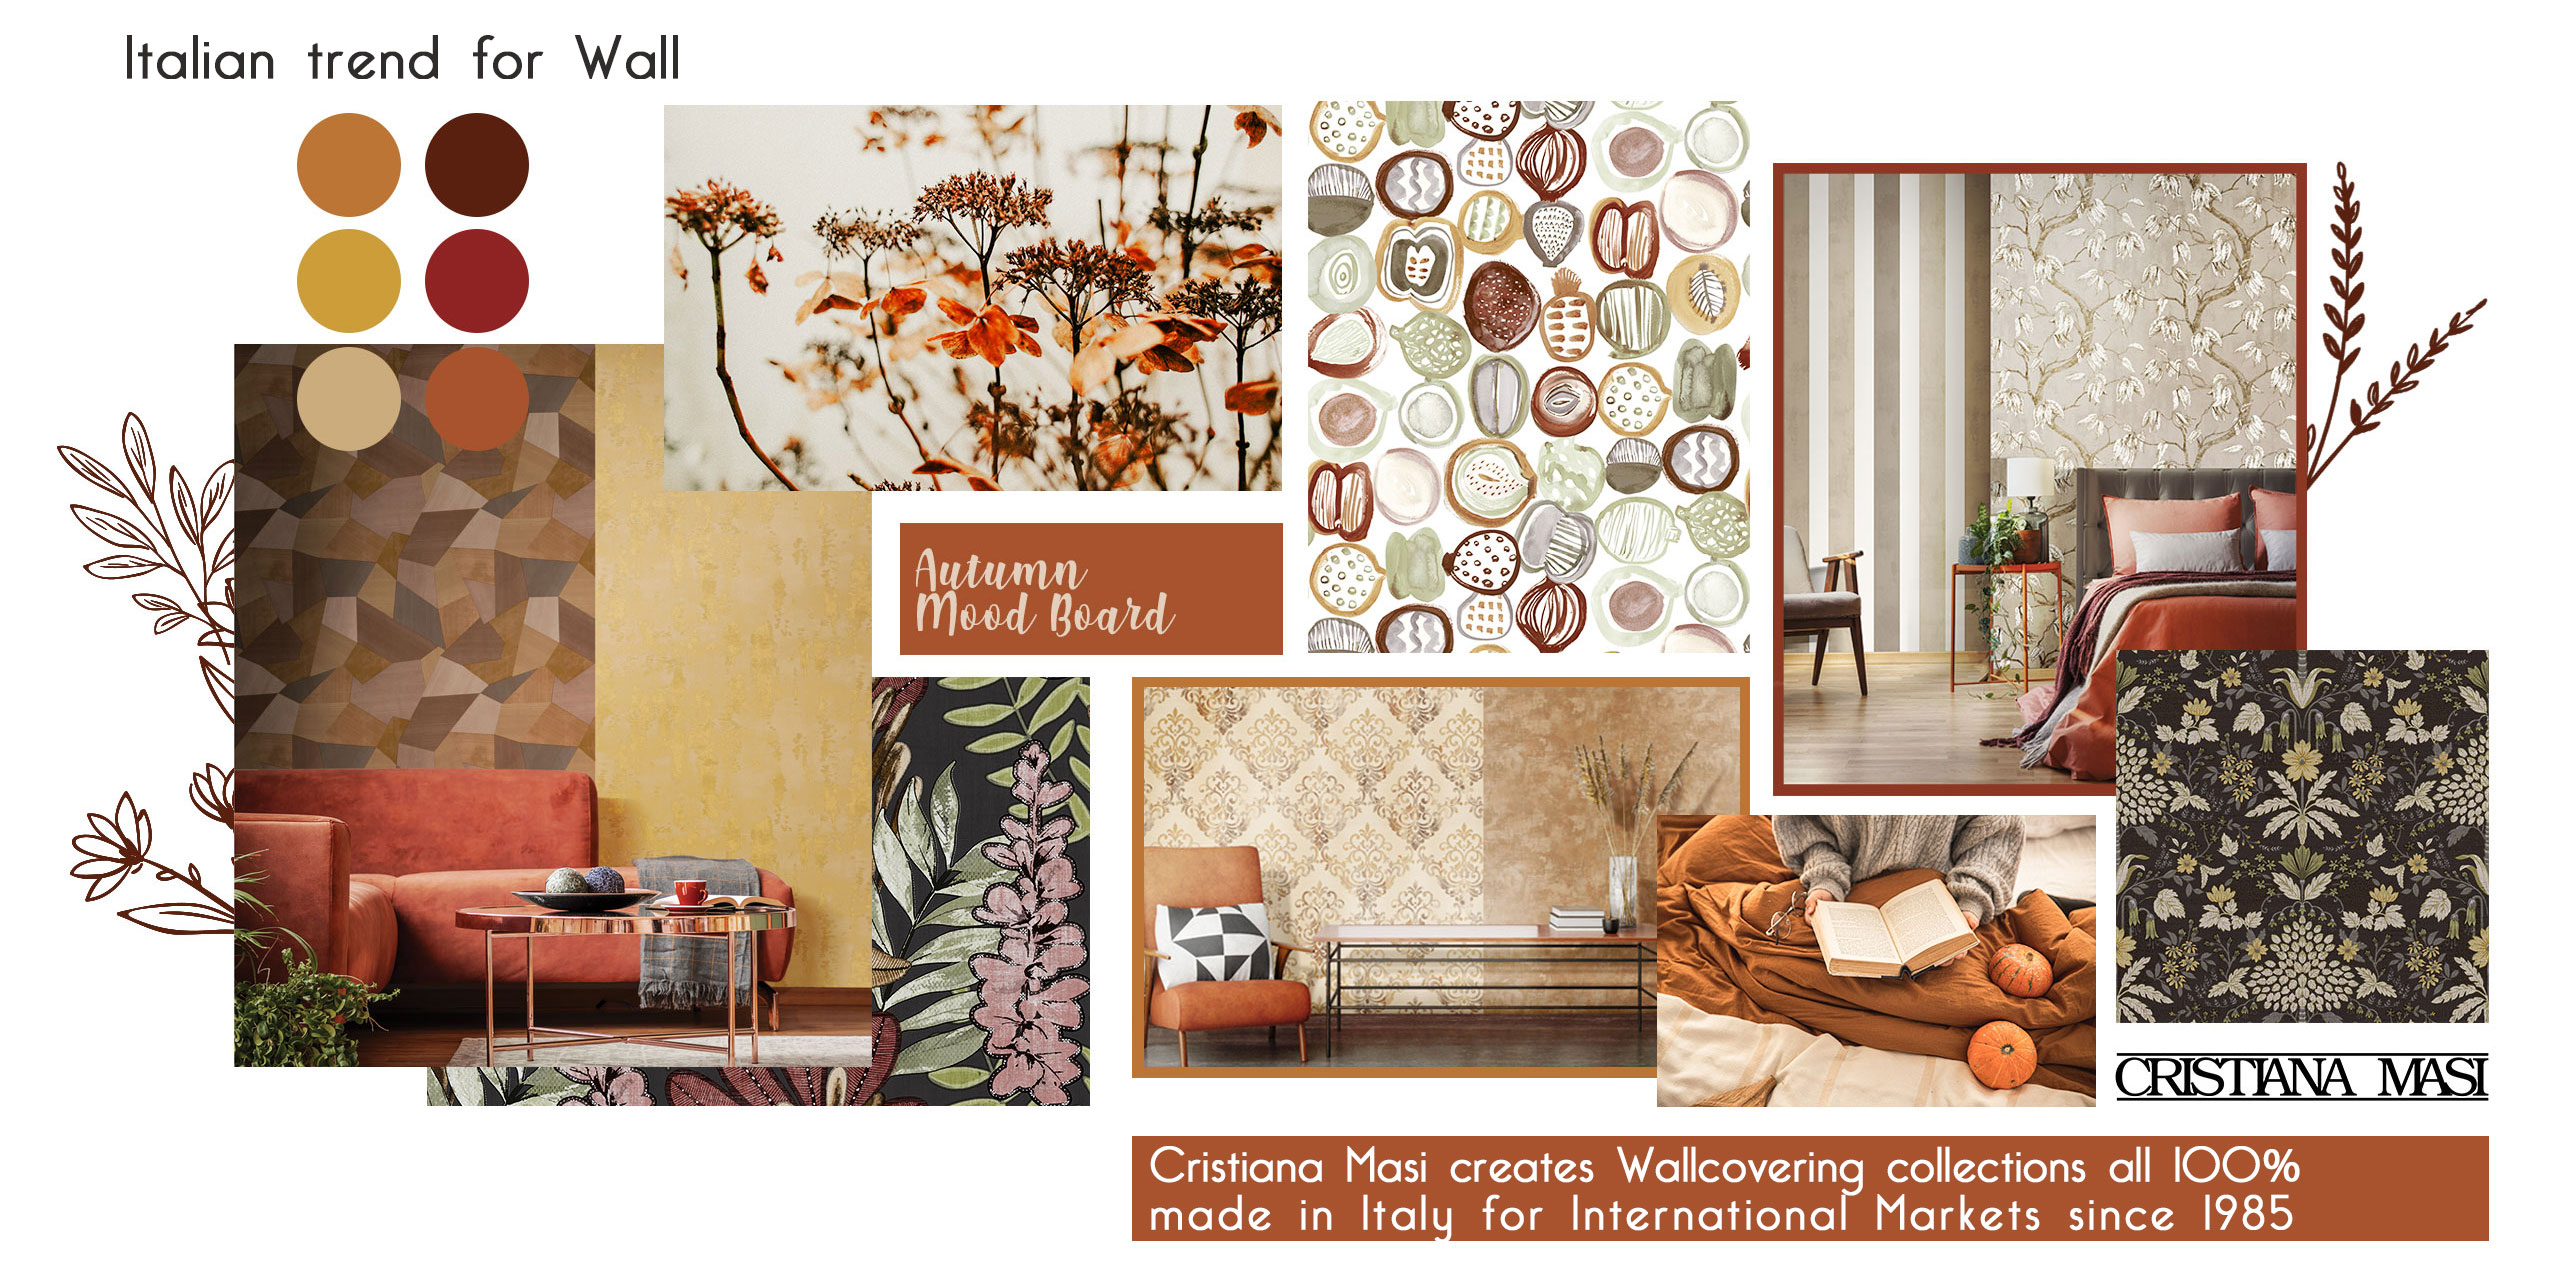 PARATO-WALLPAPERS-ITALIAN-TREND-FOR-WALL